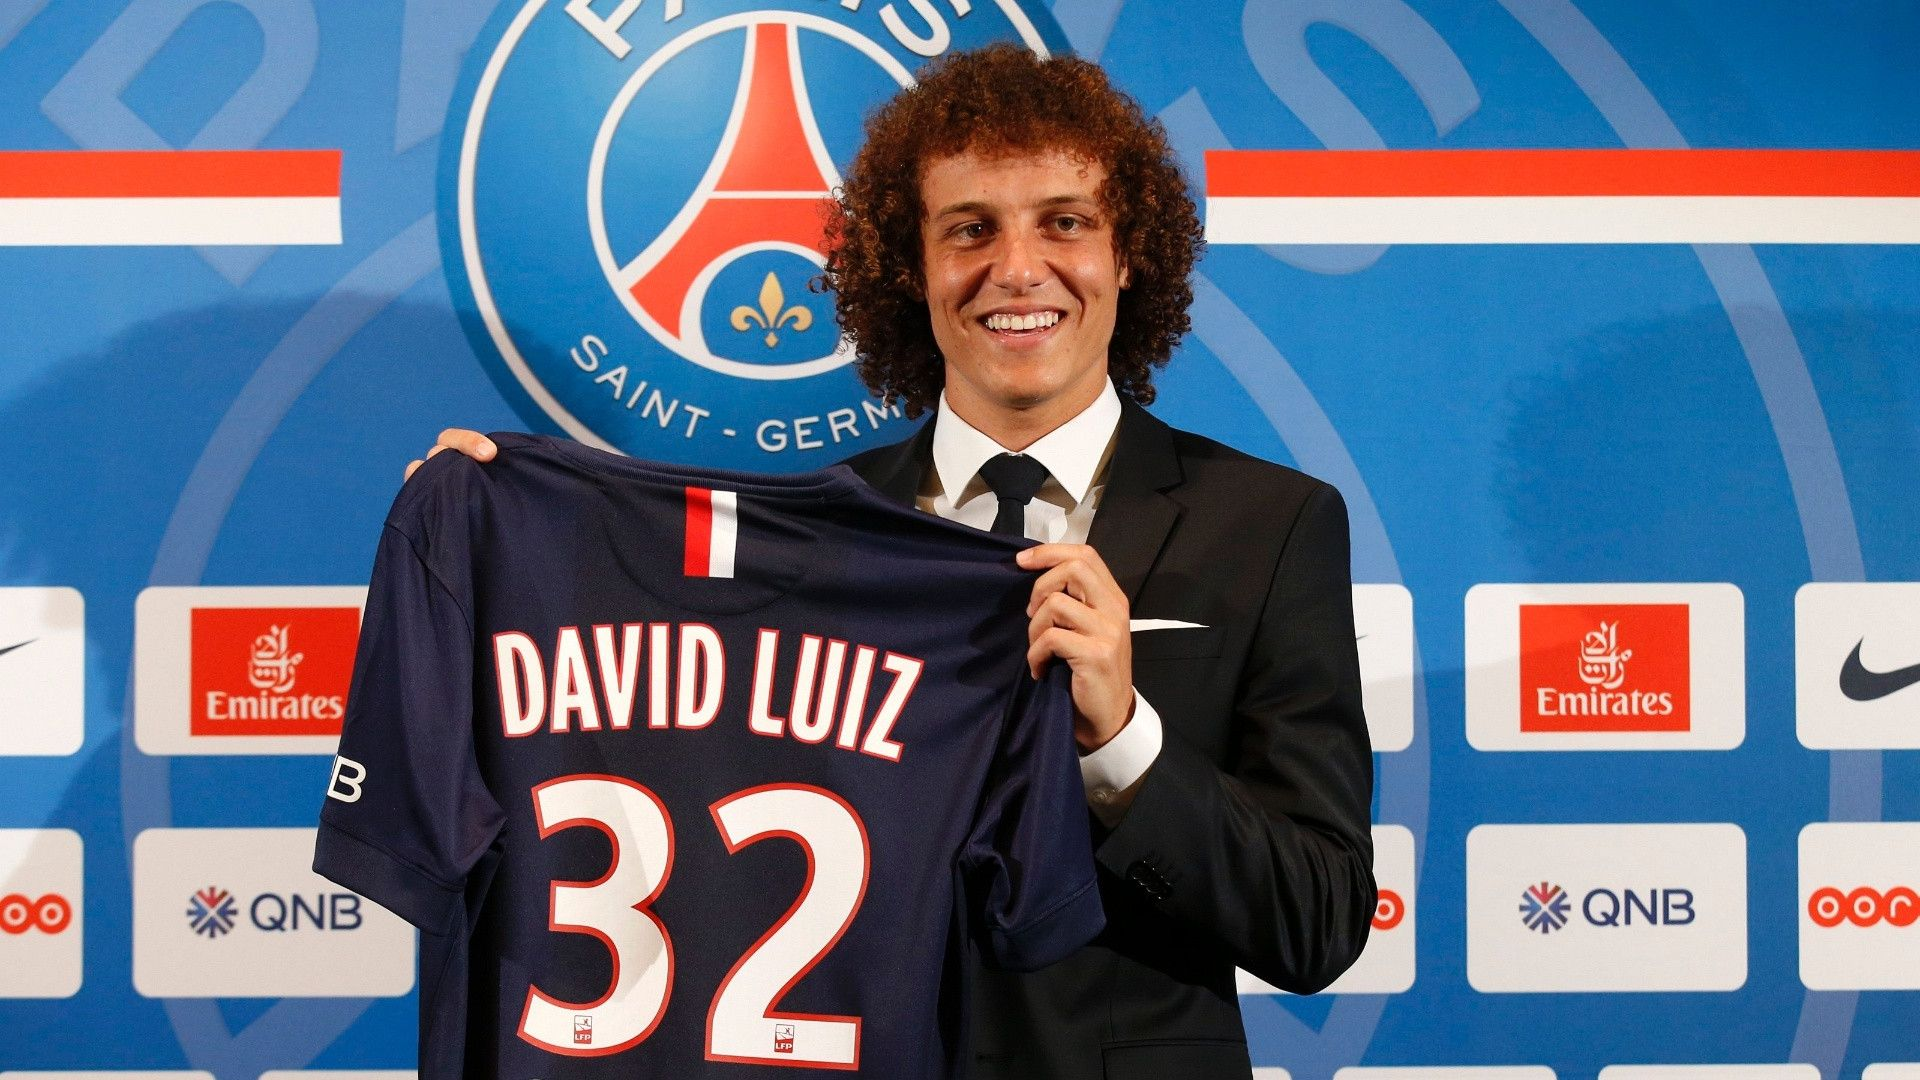 David Luiz Wallpaper 2015